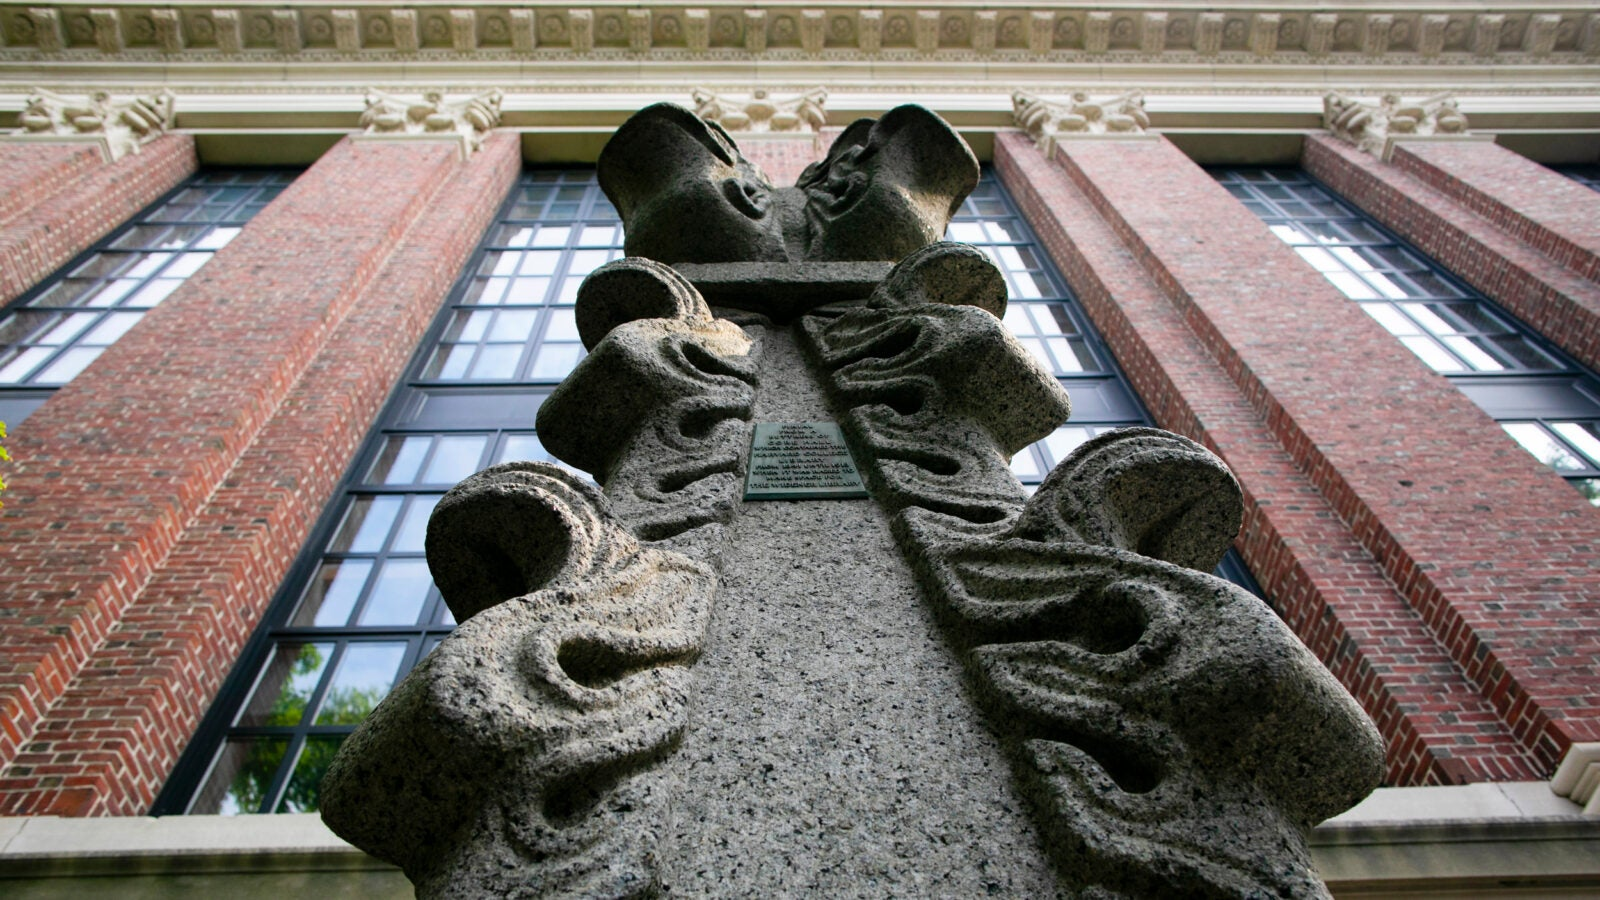 Pinnacle remains from old Gore Hall stands outside Widener Library.